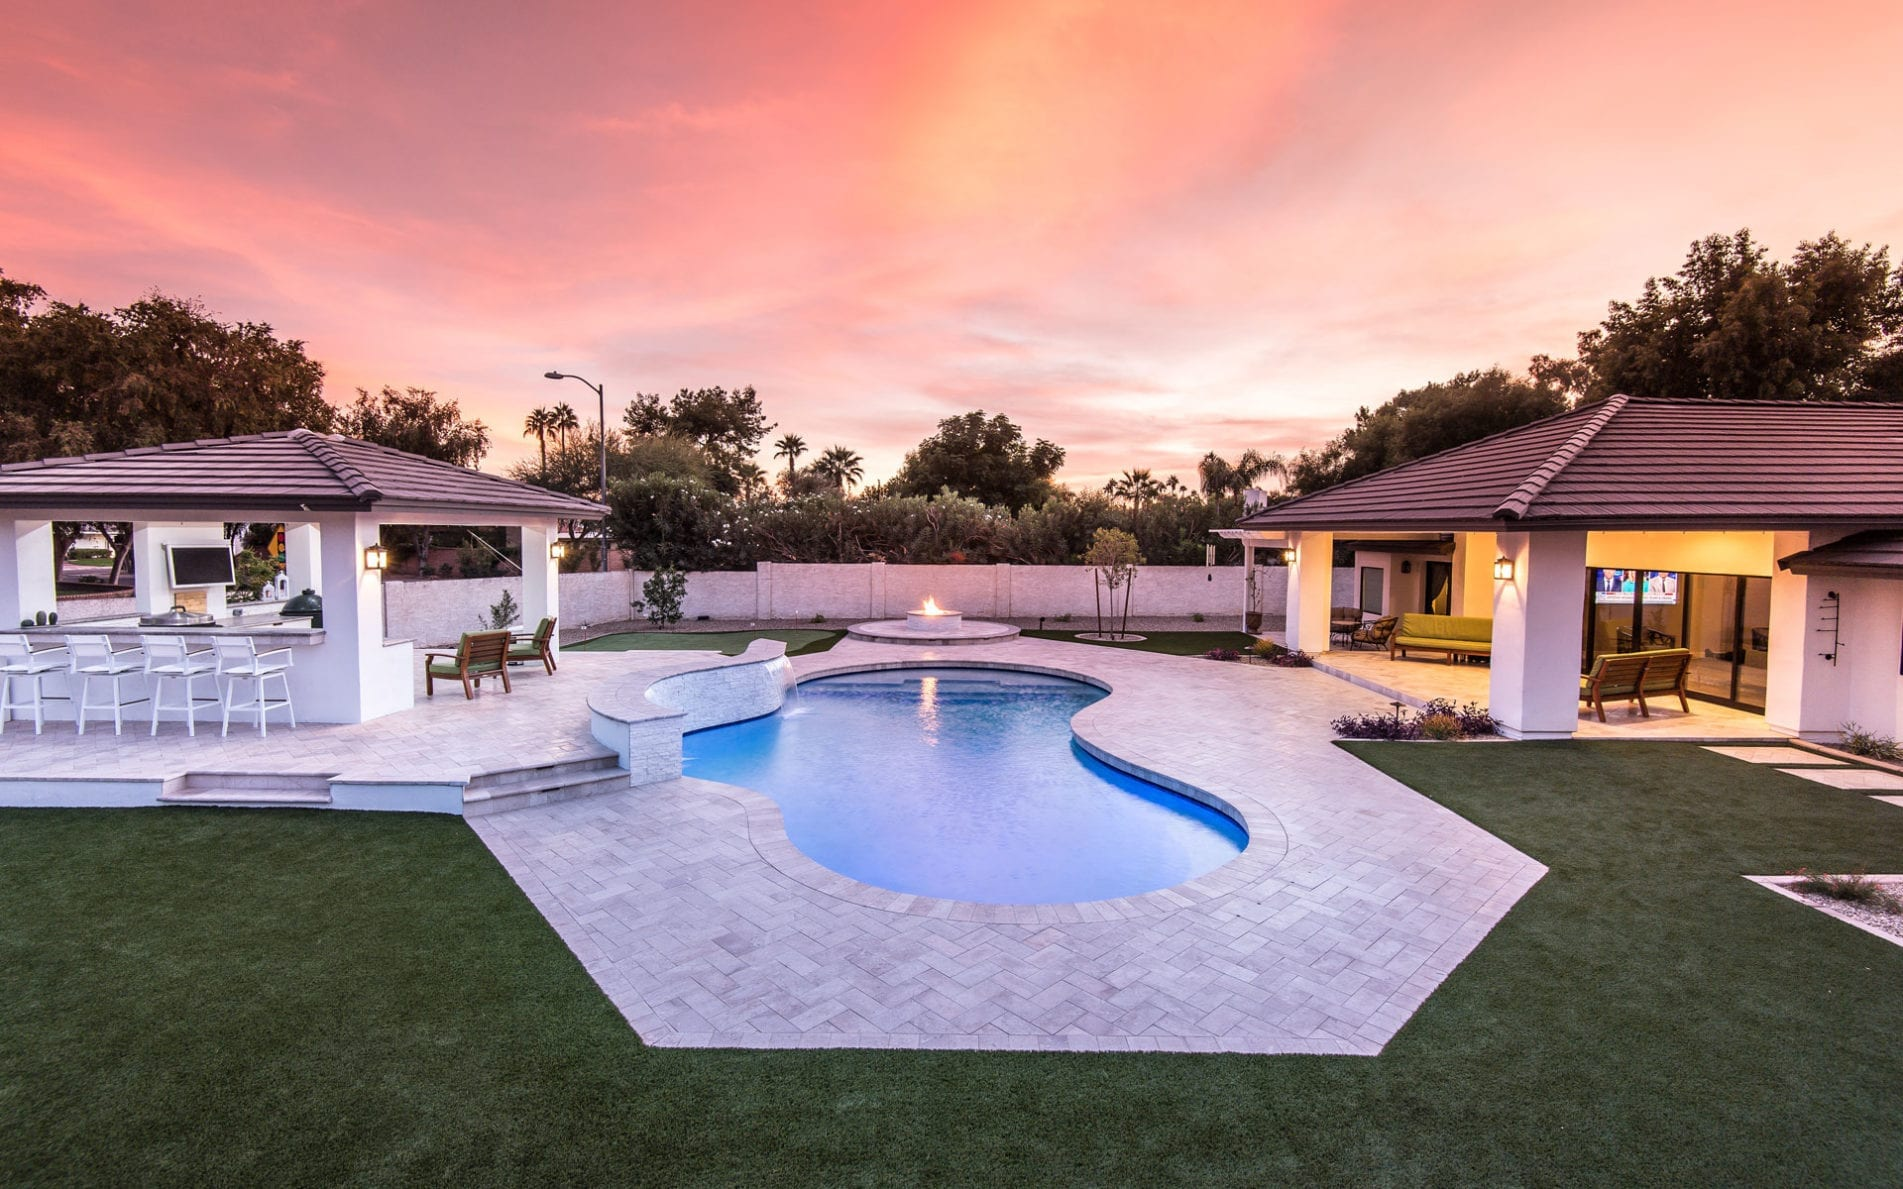 California Pools & Landscape featured in House 2 Home Magazine